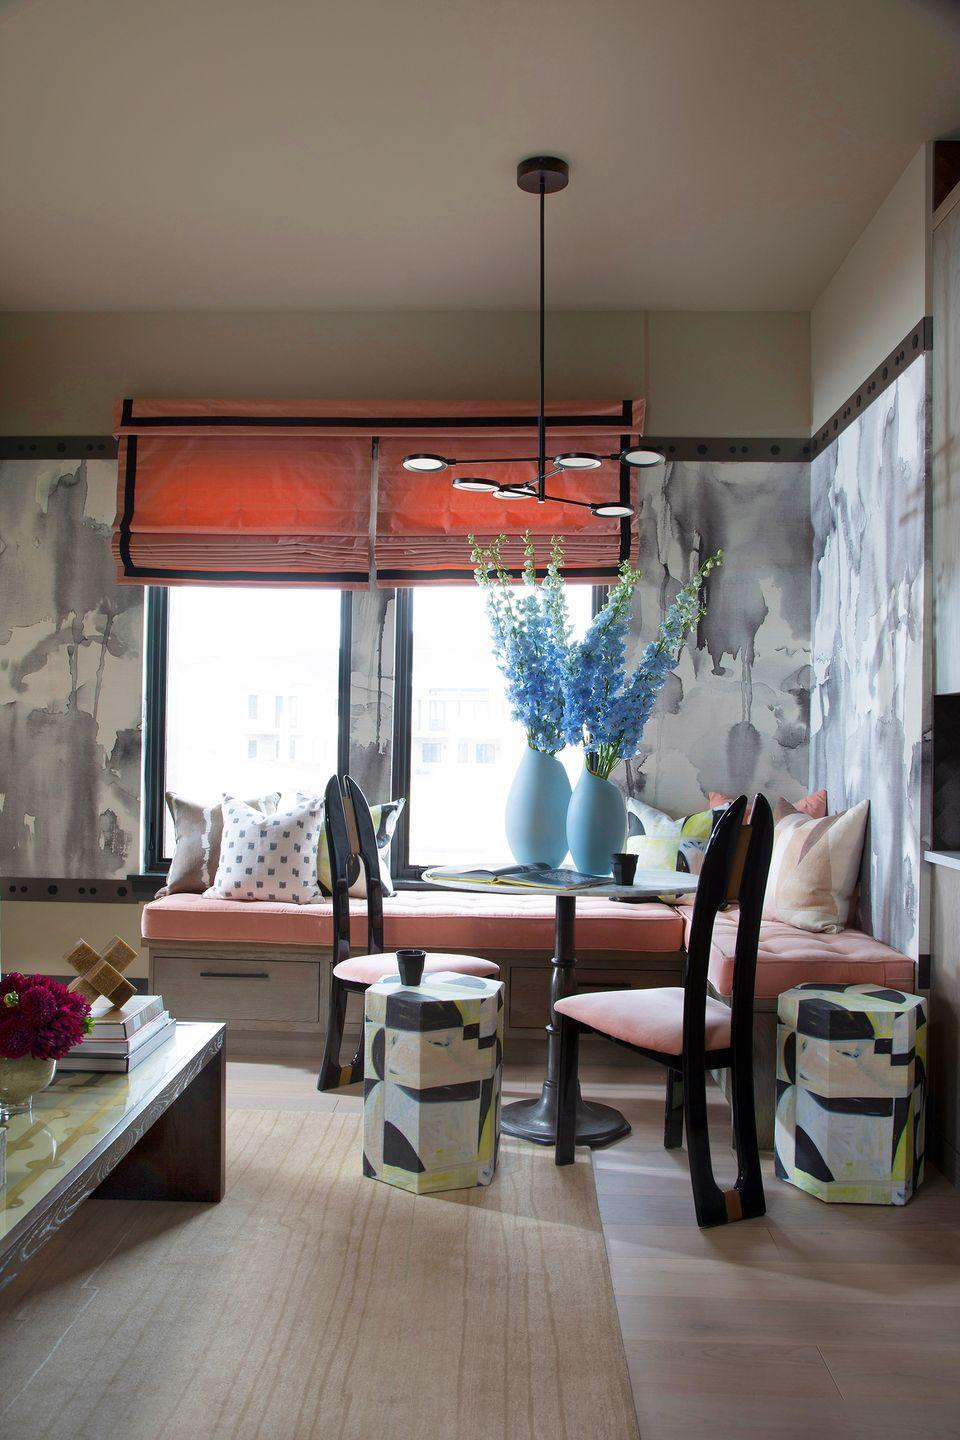 """<p>Designed by <a href=""""https://www.tiffanybrooksinteriors.com/"""" rel=""""nofollow noopener"""" target=""""_blank"""" data-ylk=""""slk:Tiffany Brooks"""" class=""""link rapid-noclick-resp"""">Tiffany Brooks</a> for the House Beautiful 202o Whole home concept, this nook carves out a place for guests to eat in their very own little apartment within the larger home. Pink upholstery on the banquette ties in nicely with the window treatments and accents throughout, like the chair cushions. </p>"""